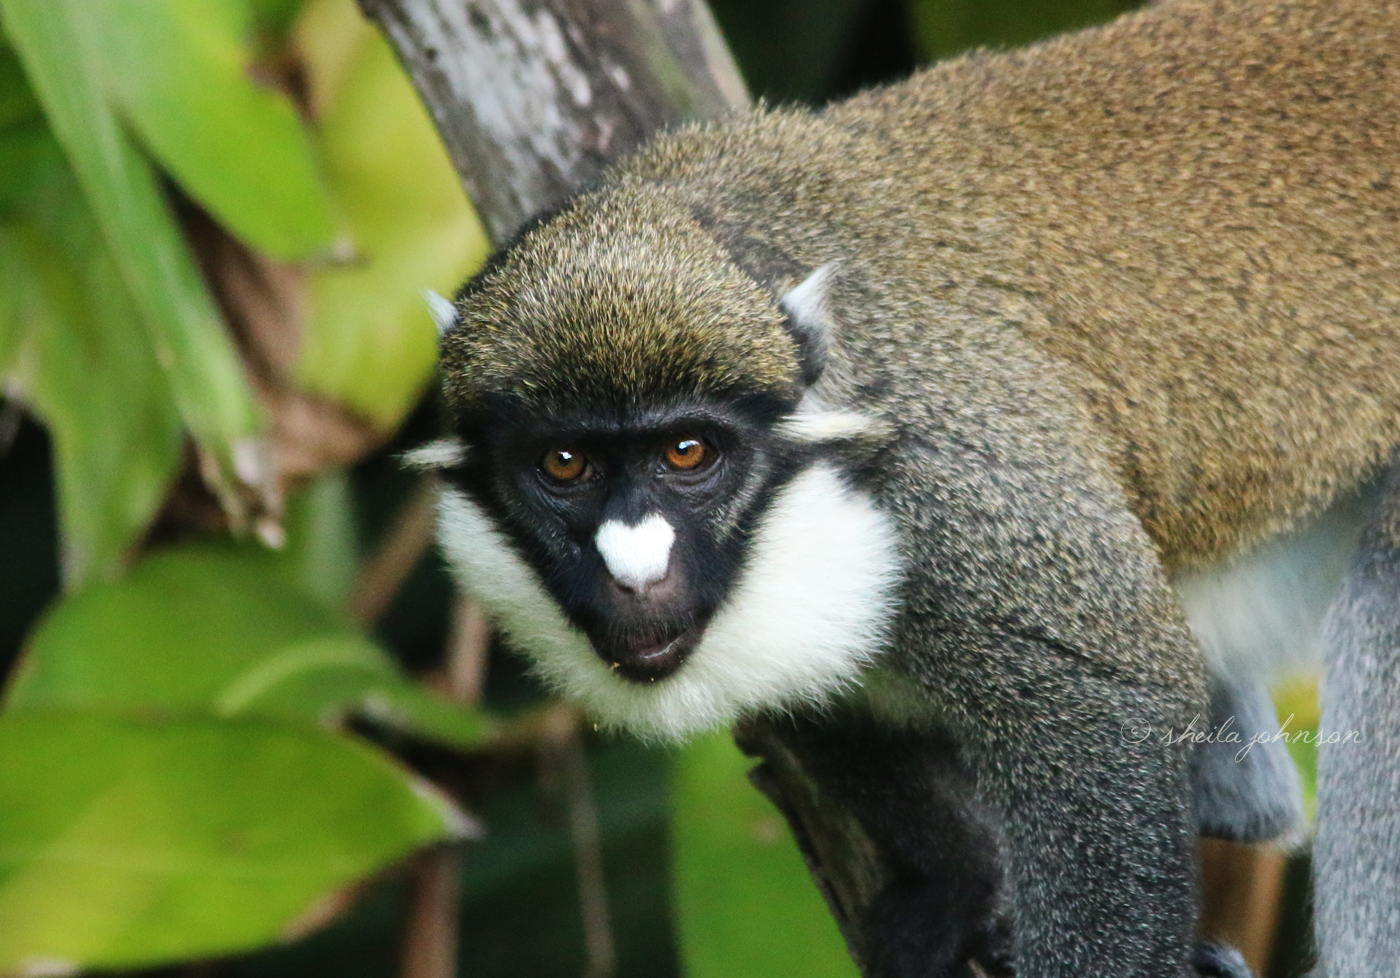 This Is A Lesser Spot-Nosed Guenon Aka Lesser Spot-Nosed Monkey. According To The Zoo Miami Website, These Monkeys Communicate In Many Ways, Including Head Movements. When In Dense Brush, They Depend On That Cute White Nose To See Those Movements More Clearly.